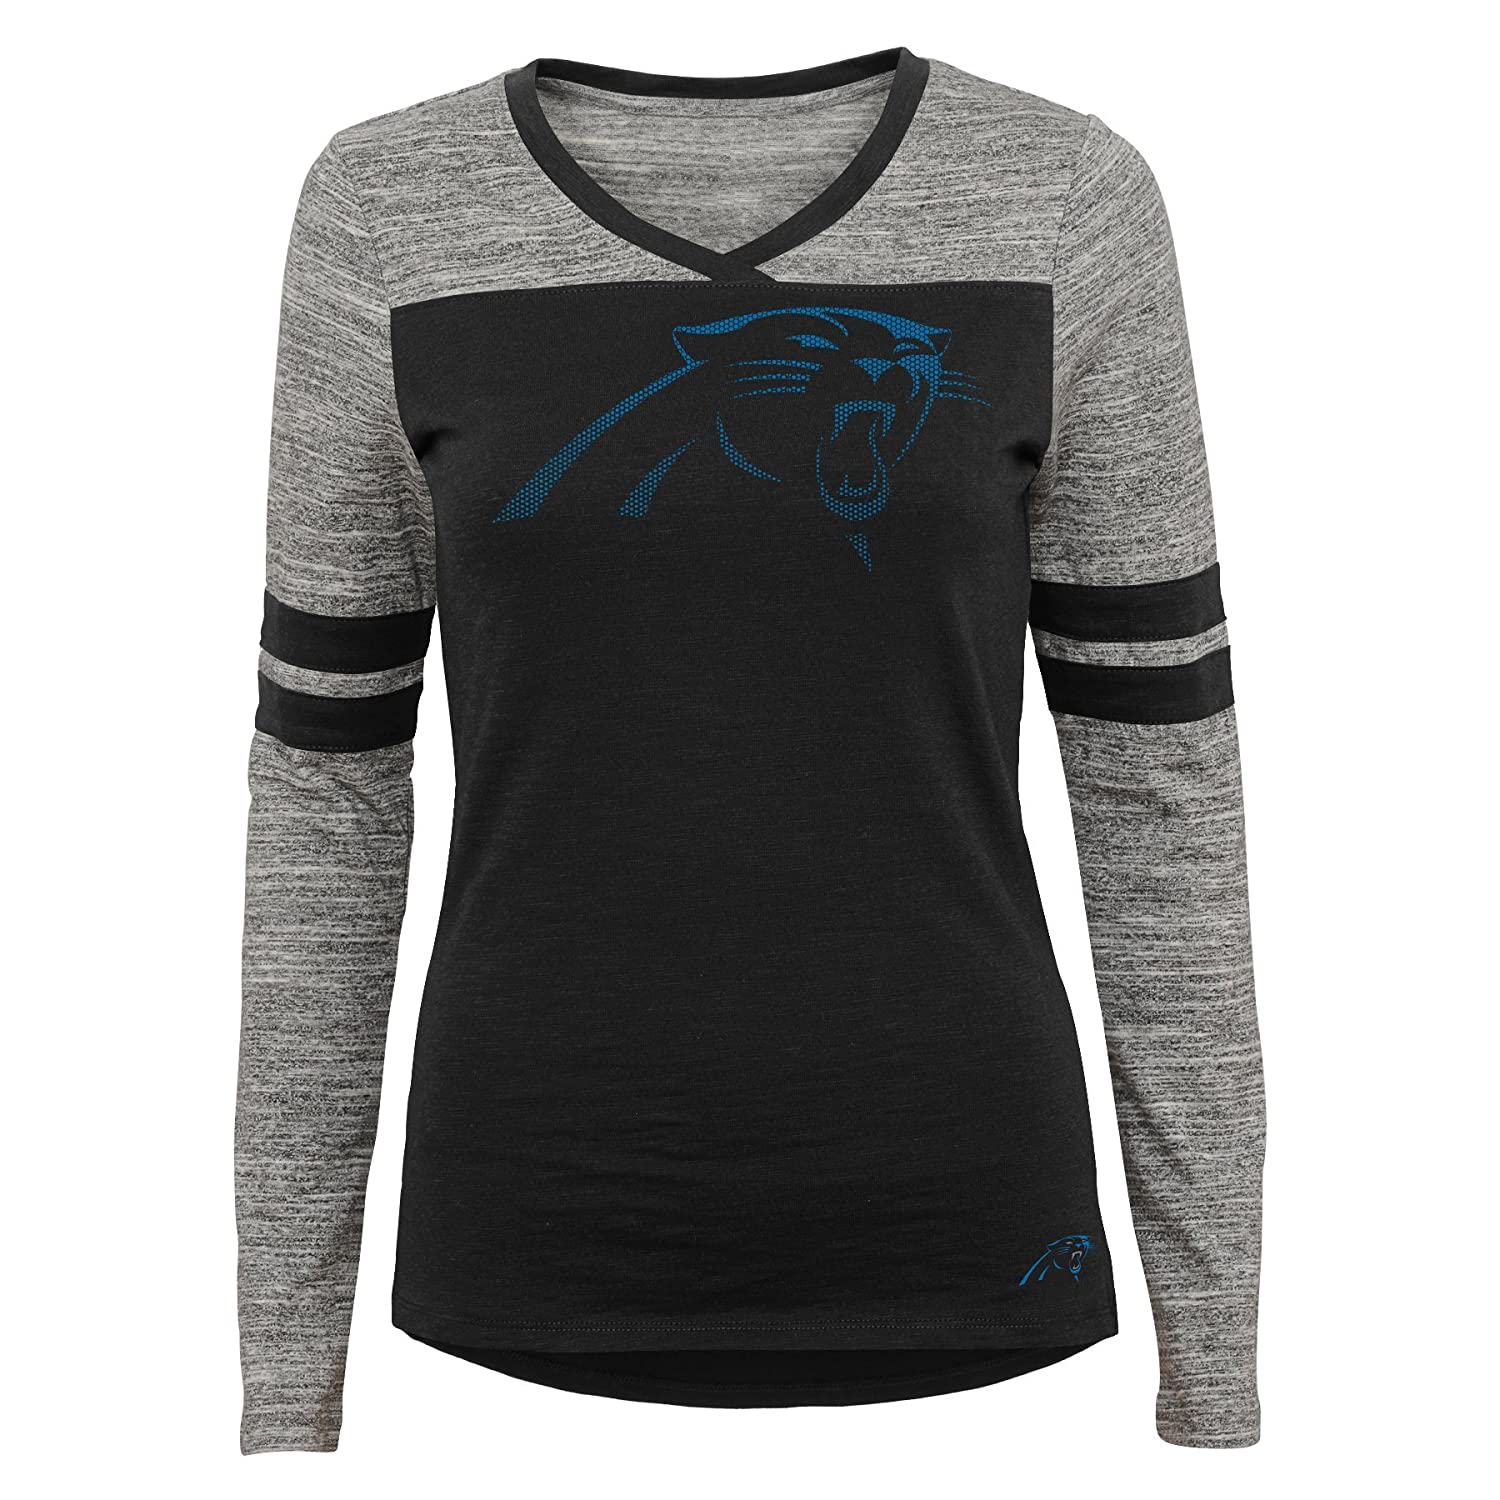 Outerstuff NFL Junior Girls Secret Fan Long Sleeve Football Tee 0-1 Carolina Panthers XS Black